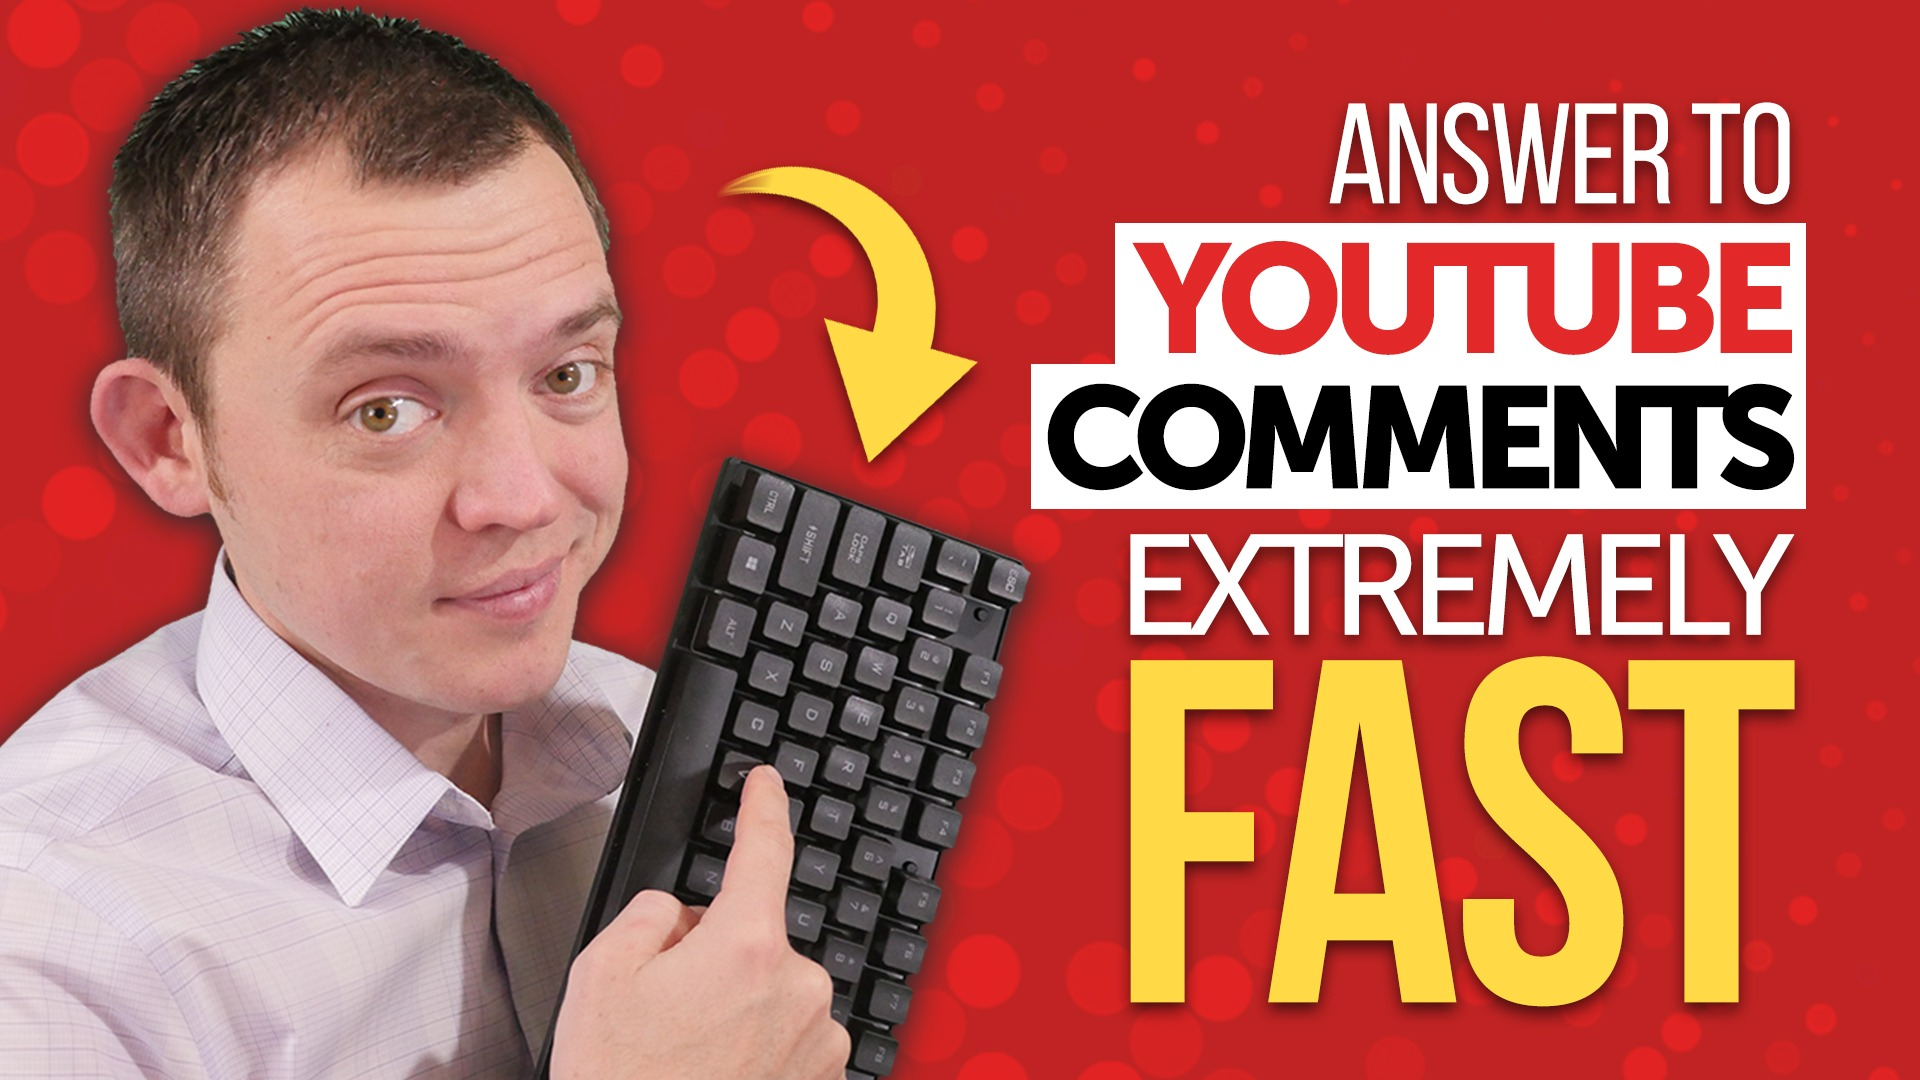 How to Answer YouTube Comments Extremely FAST! (Like a Pro)